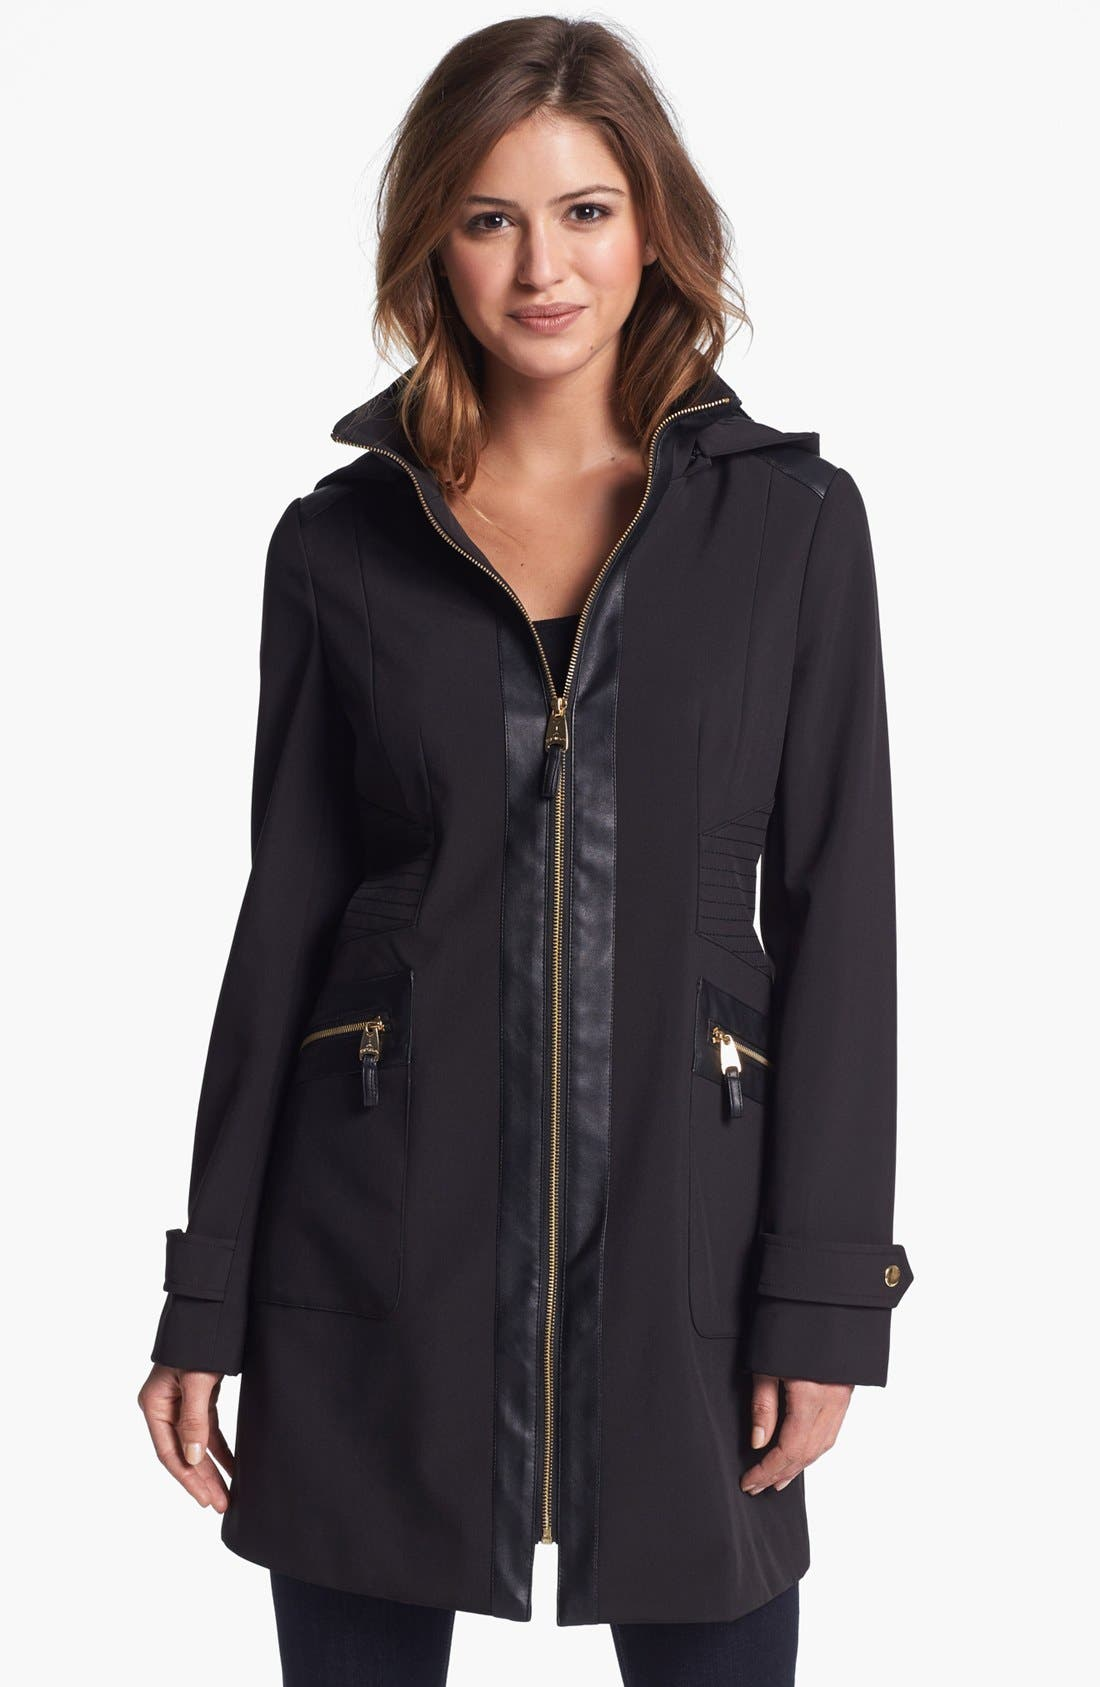 Alternate Image 1 Selected - Via Spiga Faux Leather Trim Soft Shell Coat (Regular & Petite) (Online Only)